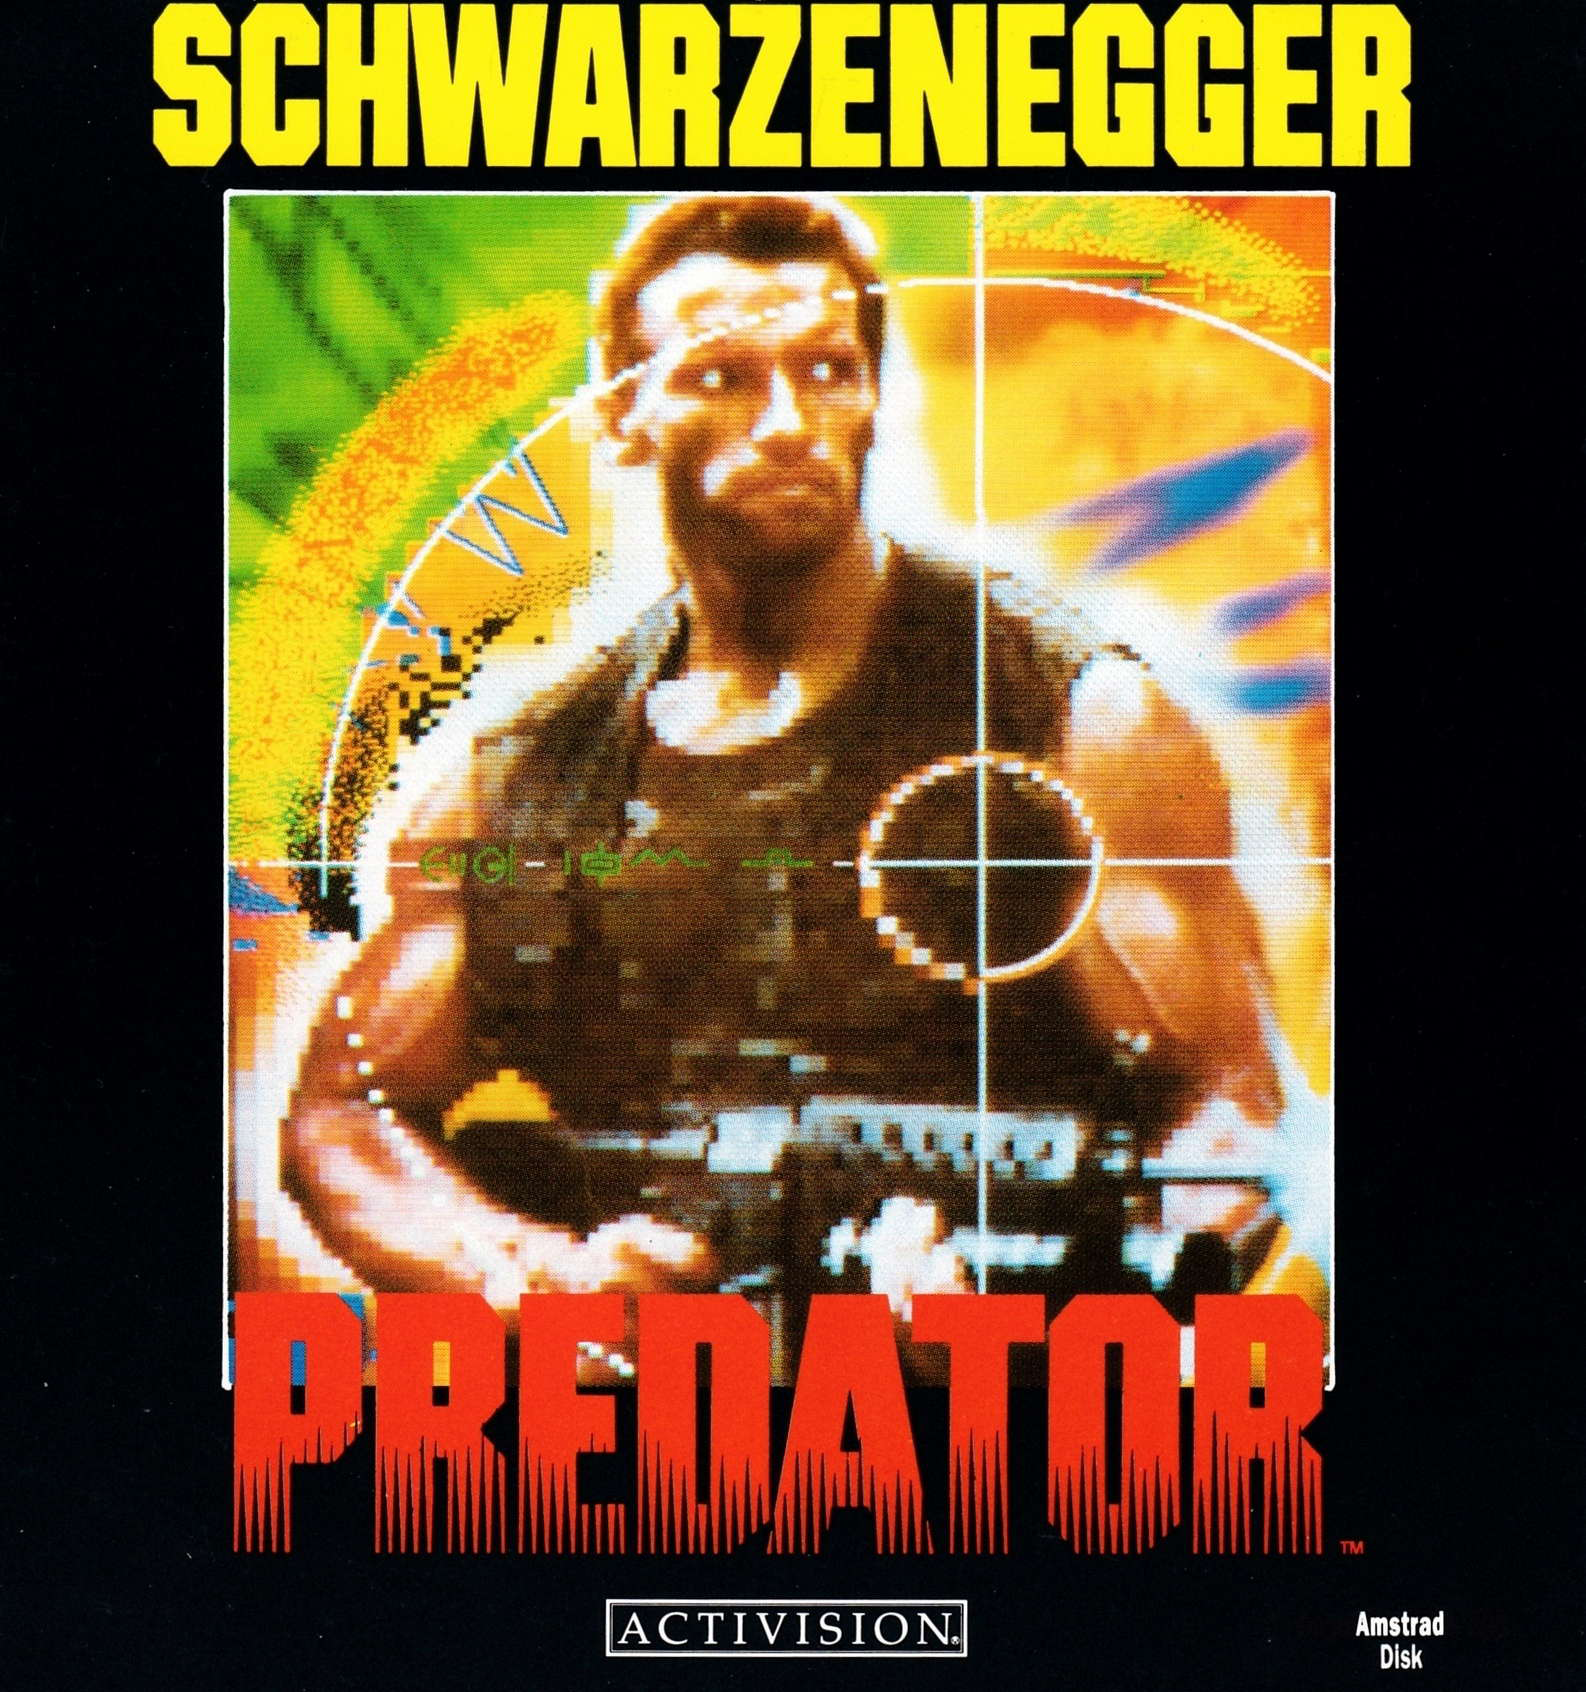 screenshot of the Amstrad CPC game Predator by GameBase CPC